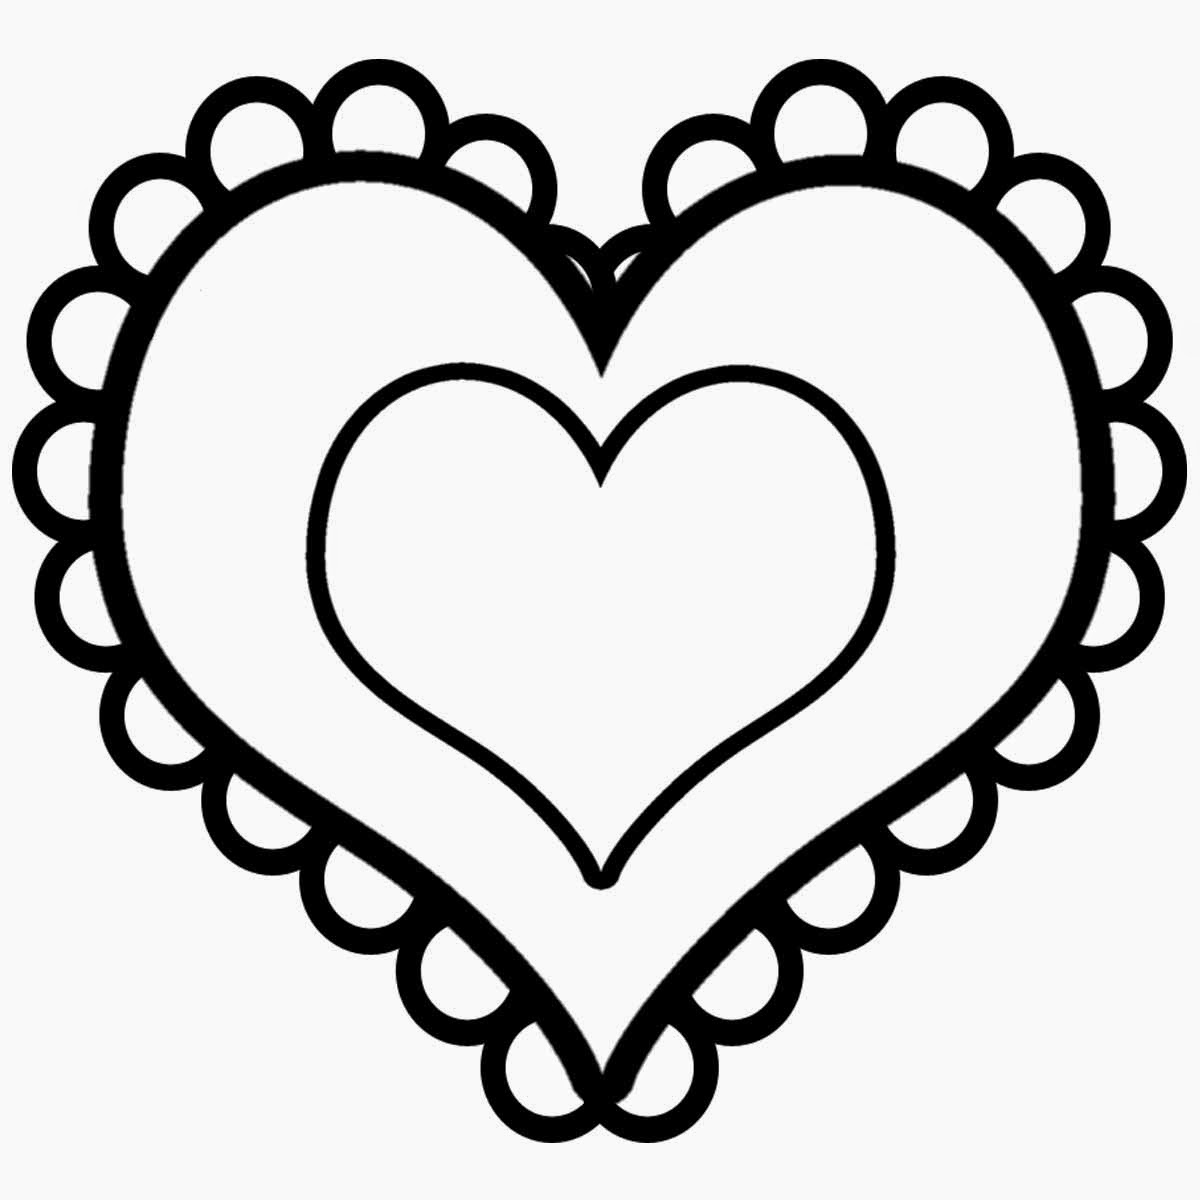 Coloring pictures of hearts